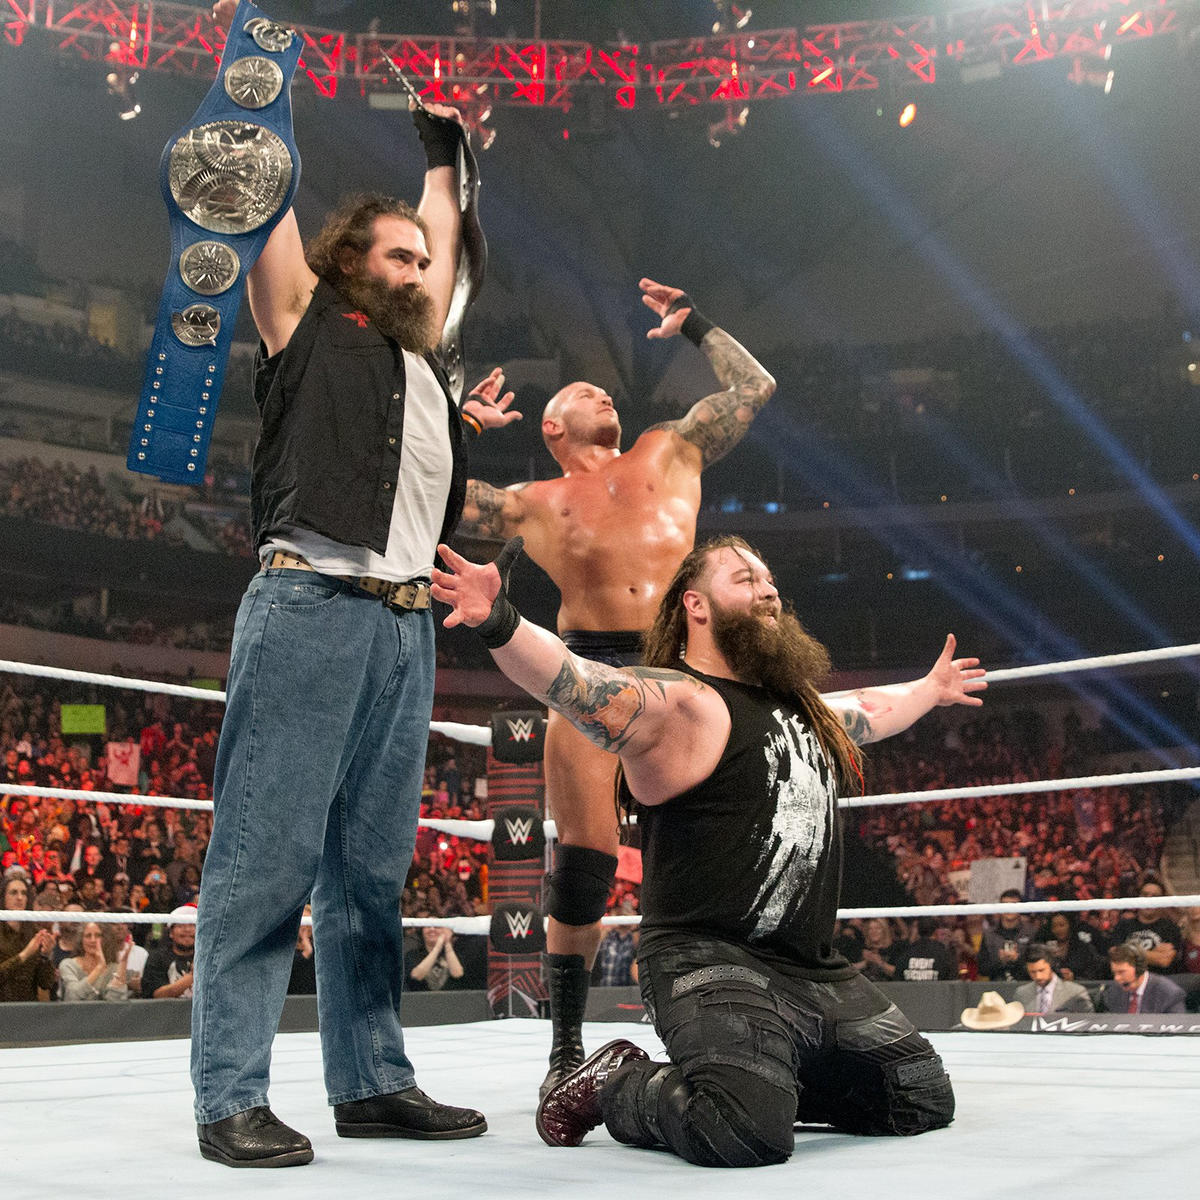 The Wyatt Family wins SmackDown Tag Team Championships: WWE TLC 2016